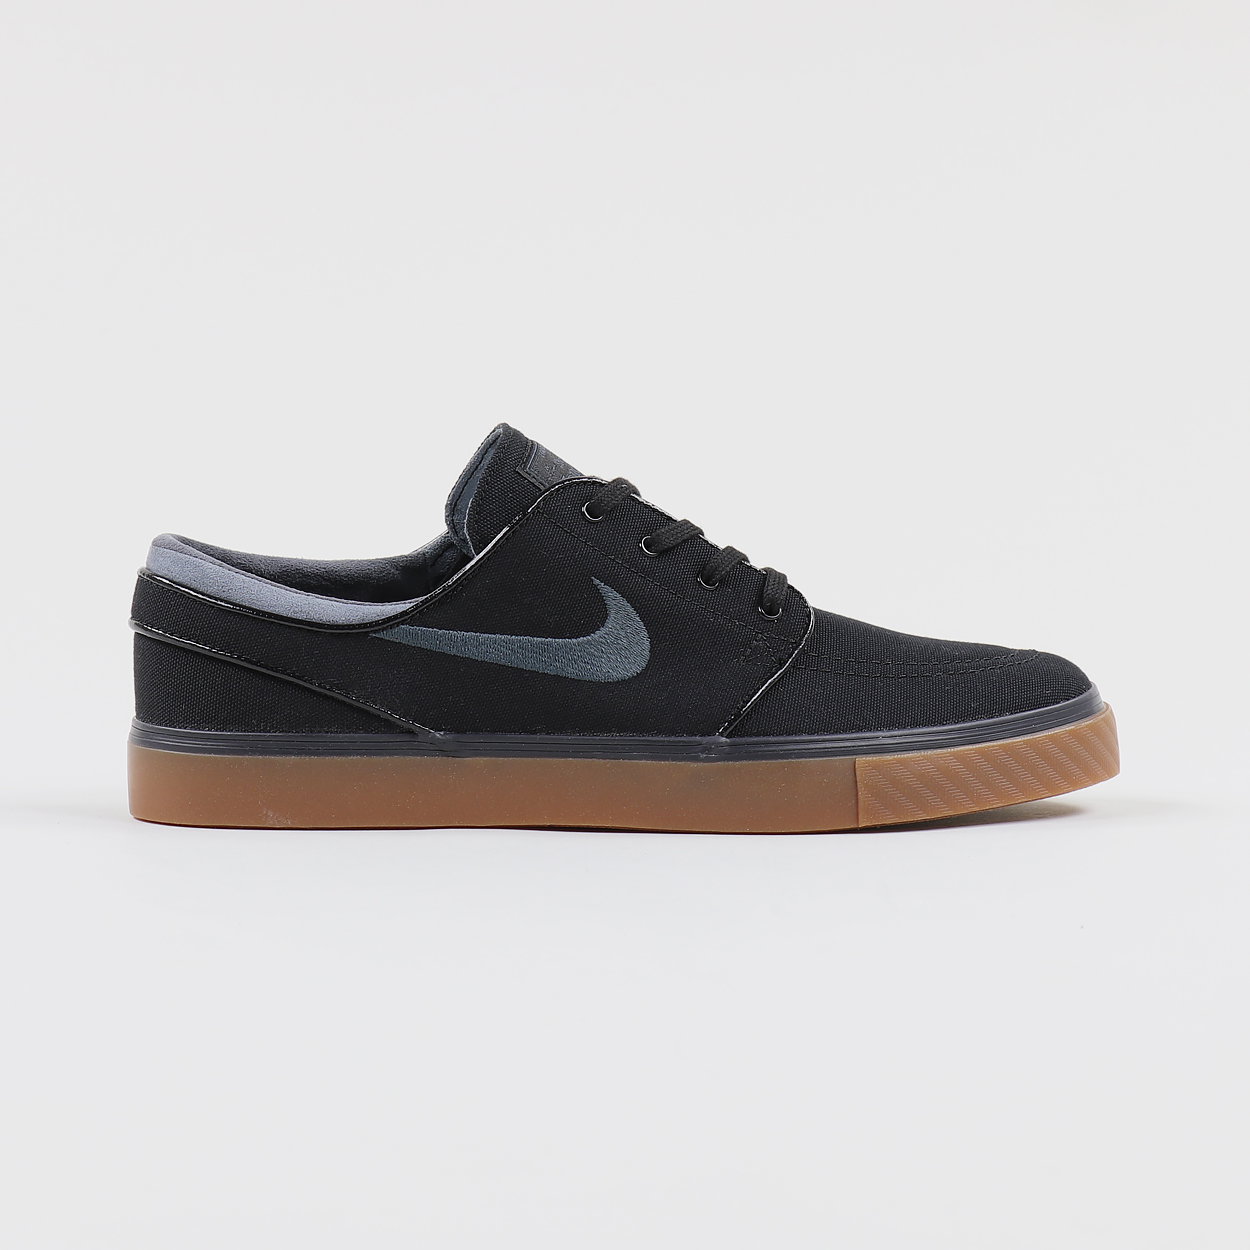 bf85bcd06daa29 Nike SB Zoom Stefan Janoski Model Canvas Shoes Black Anthracite £49.79